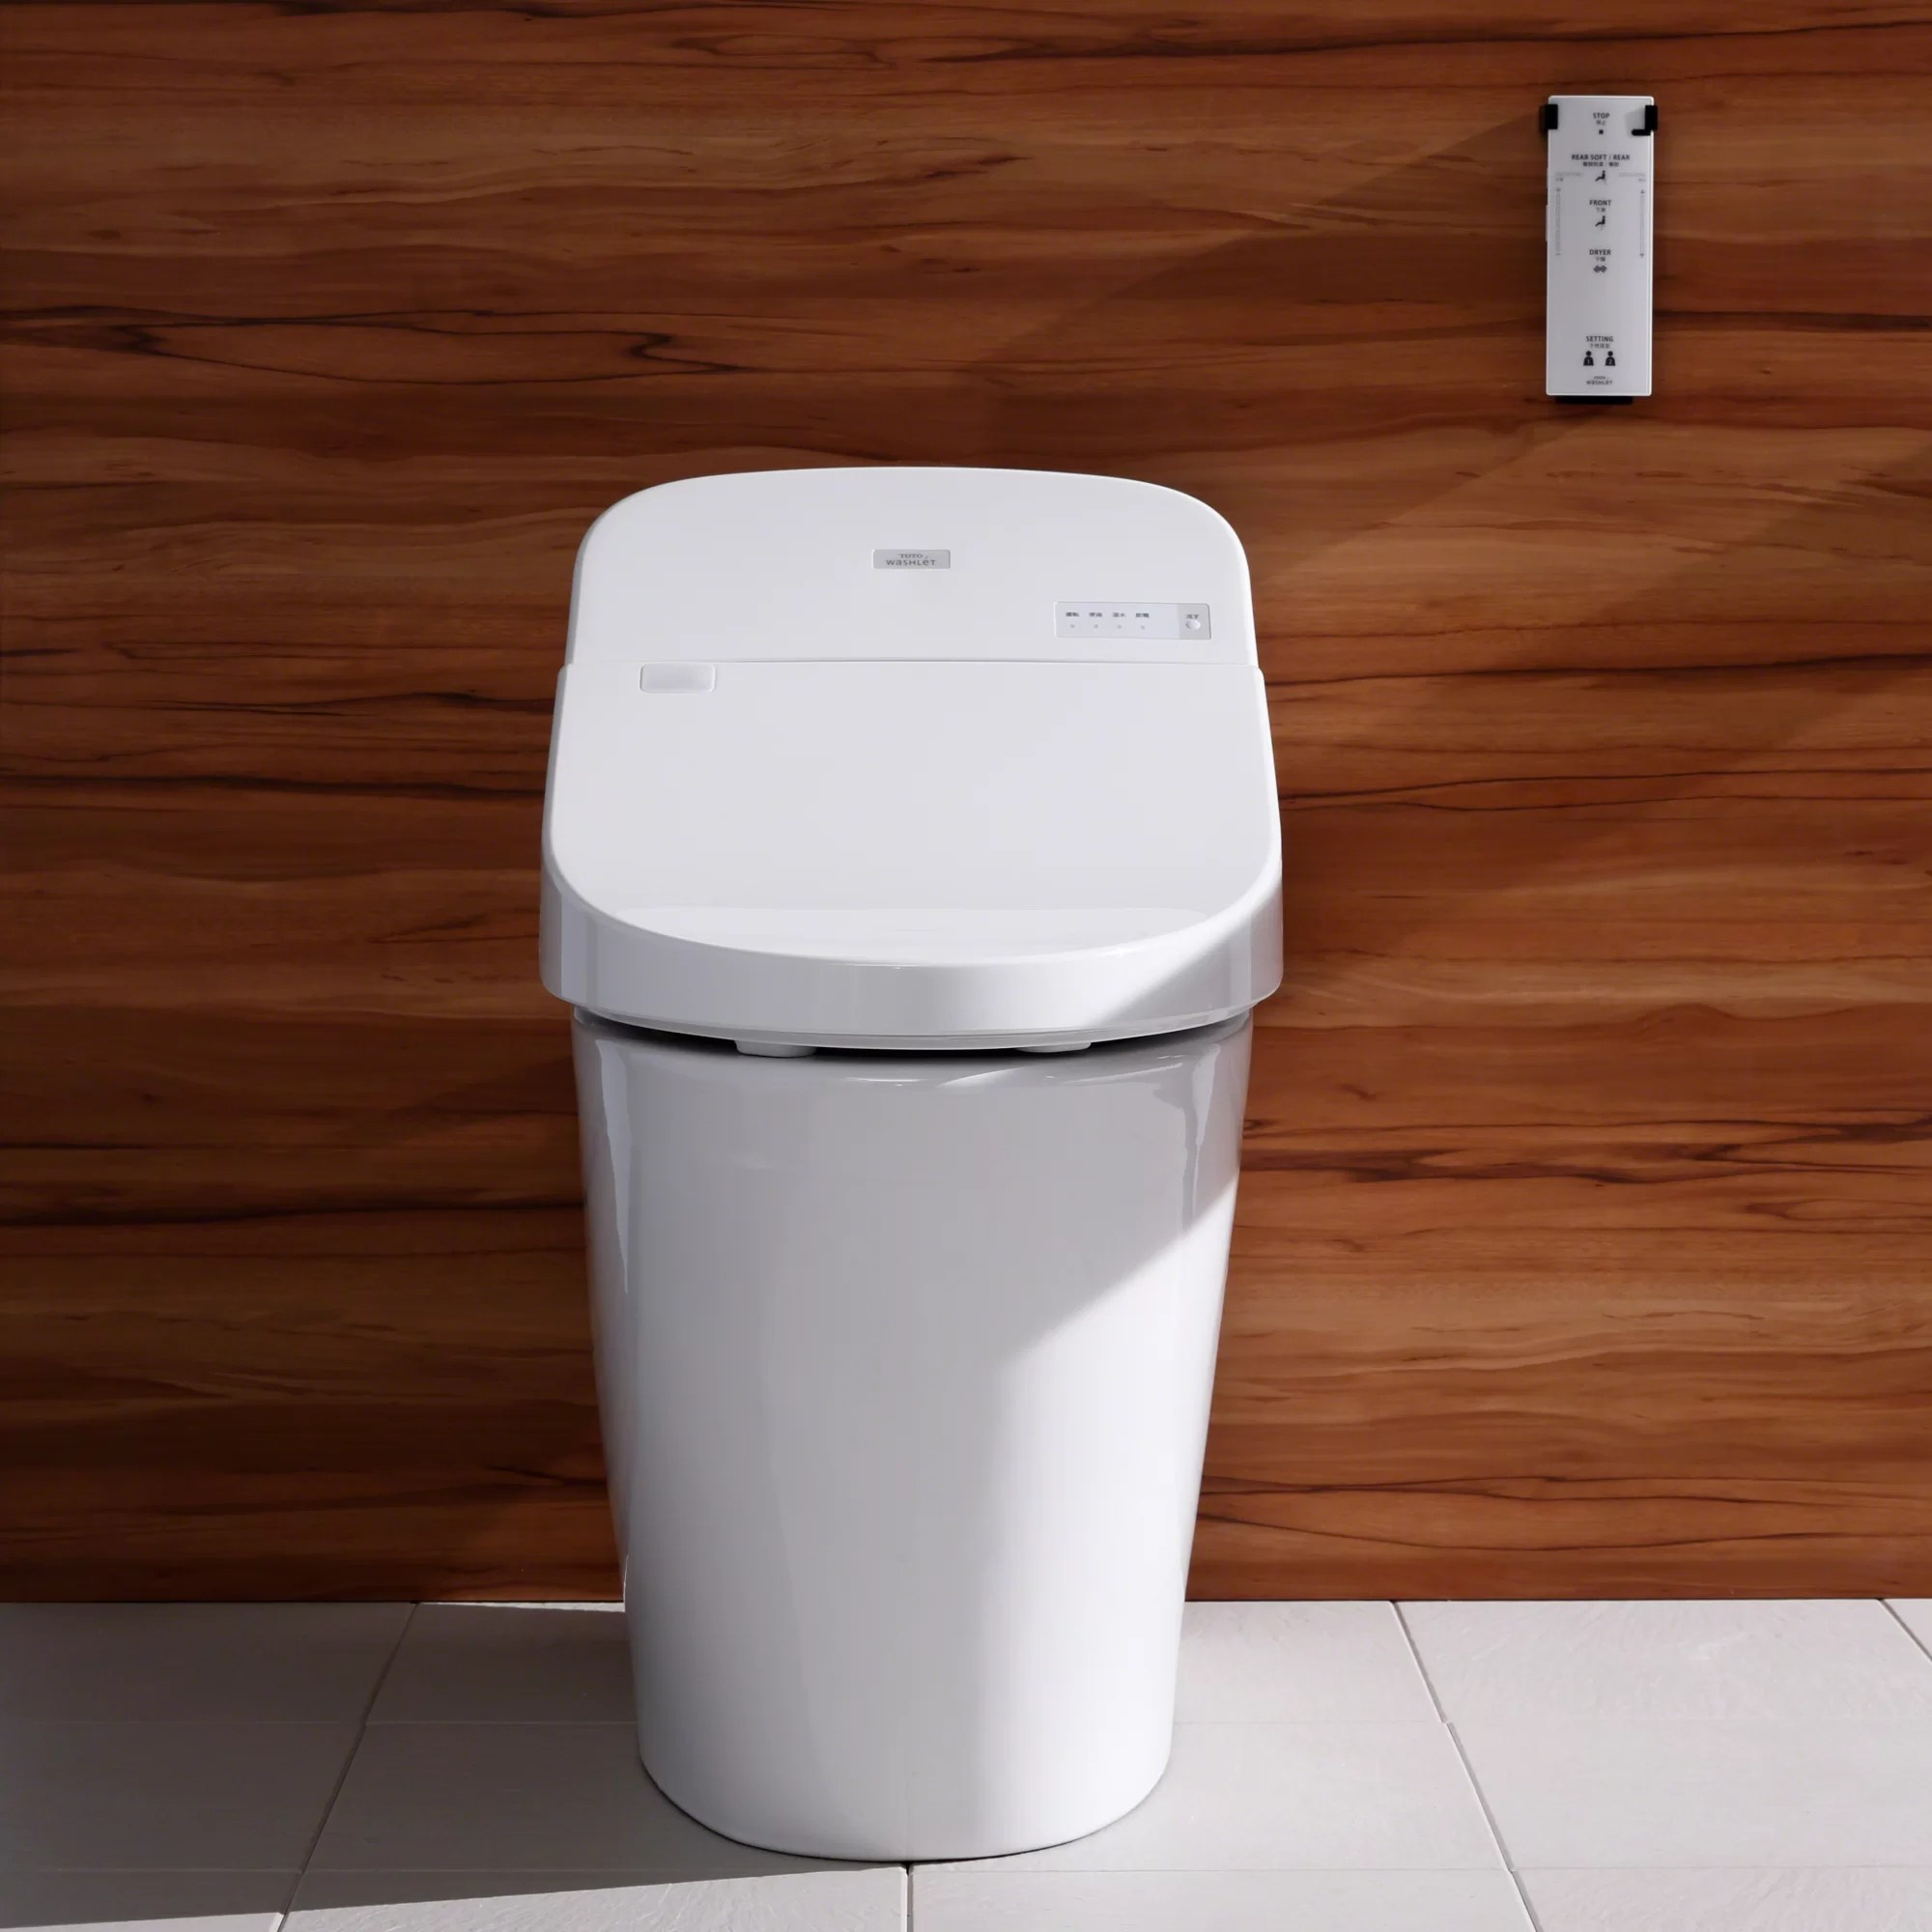 Toilette Toto Washlet G400 Integrated Dual Flush 1 28 Or 9 Gpf Floor Mounted Toilet With Bidet Seat